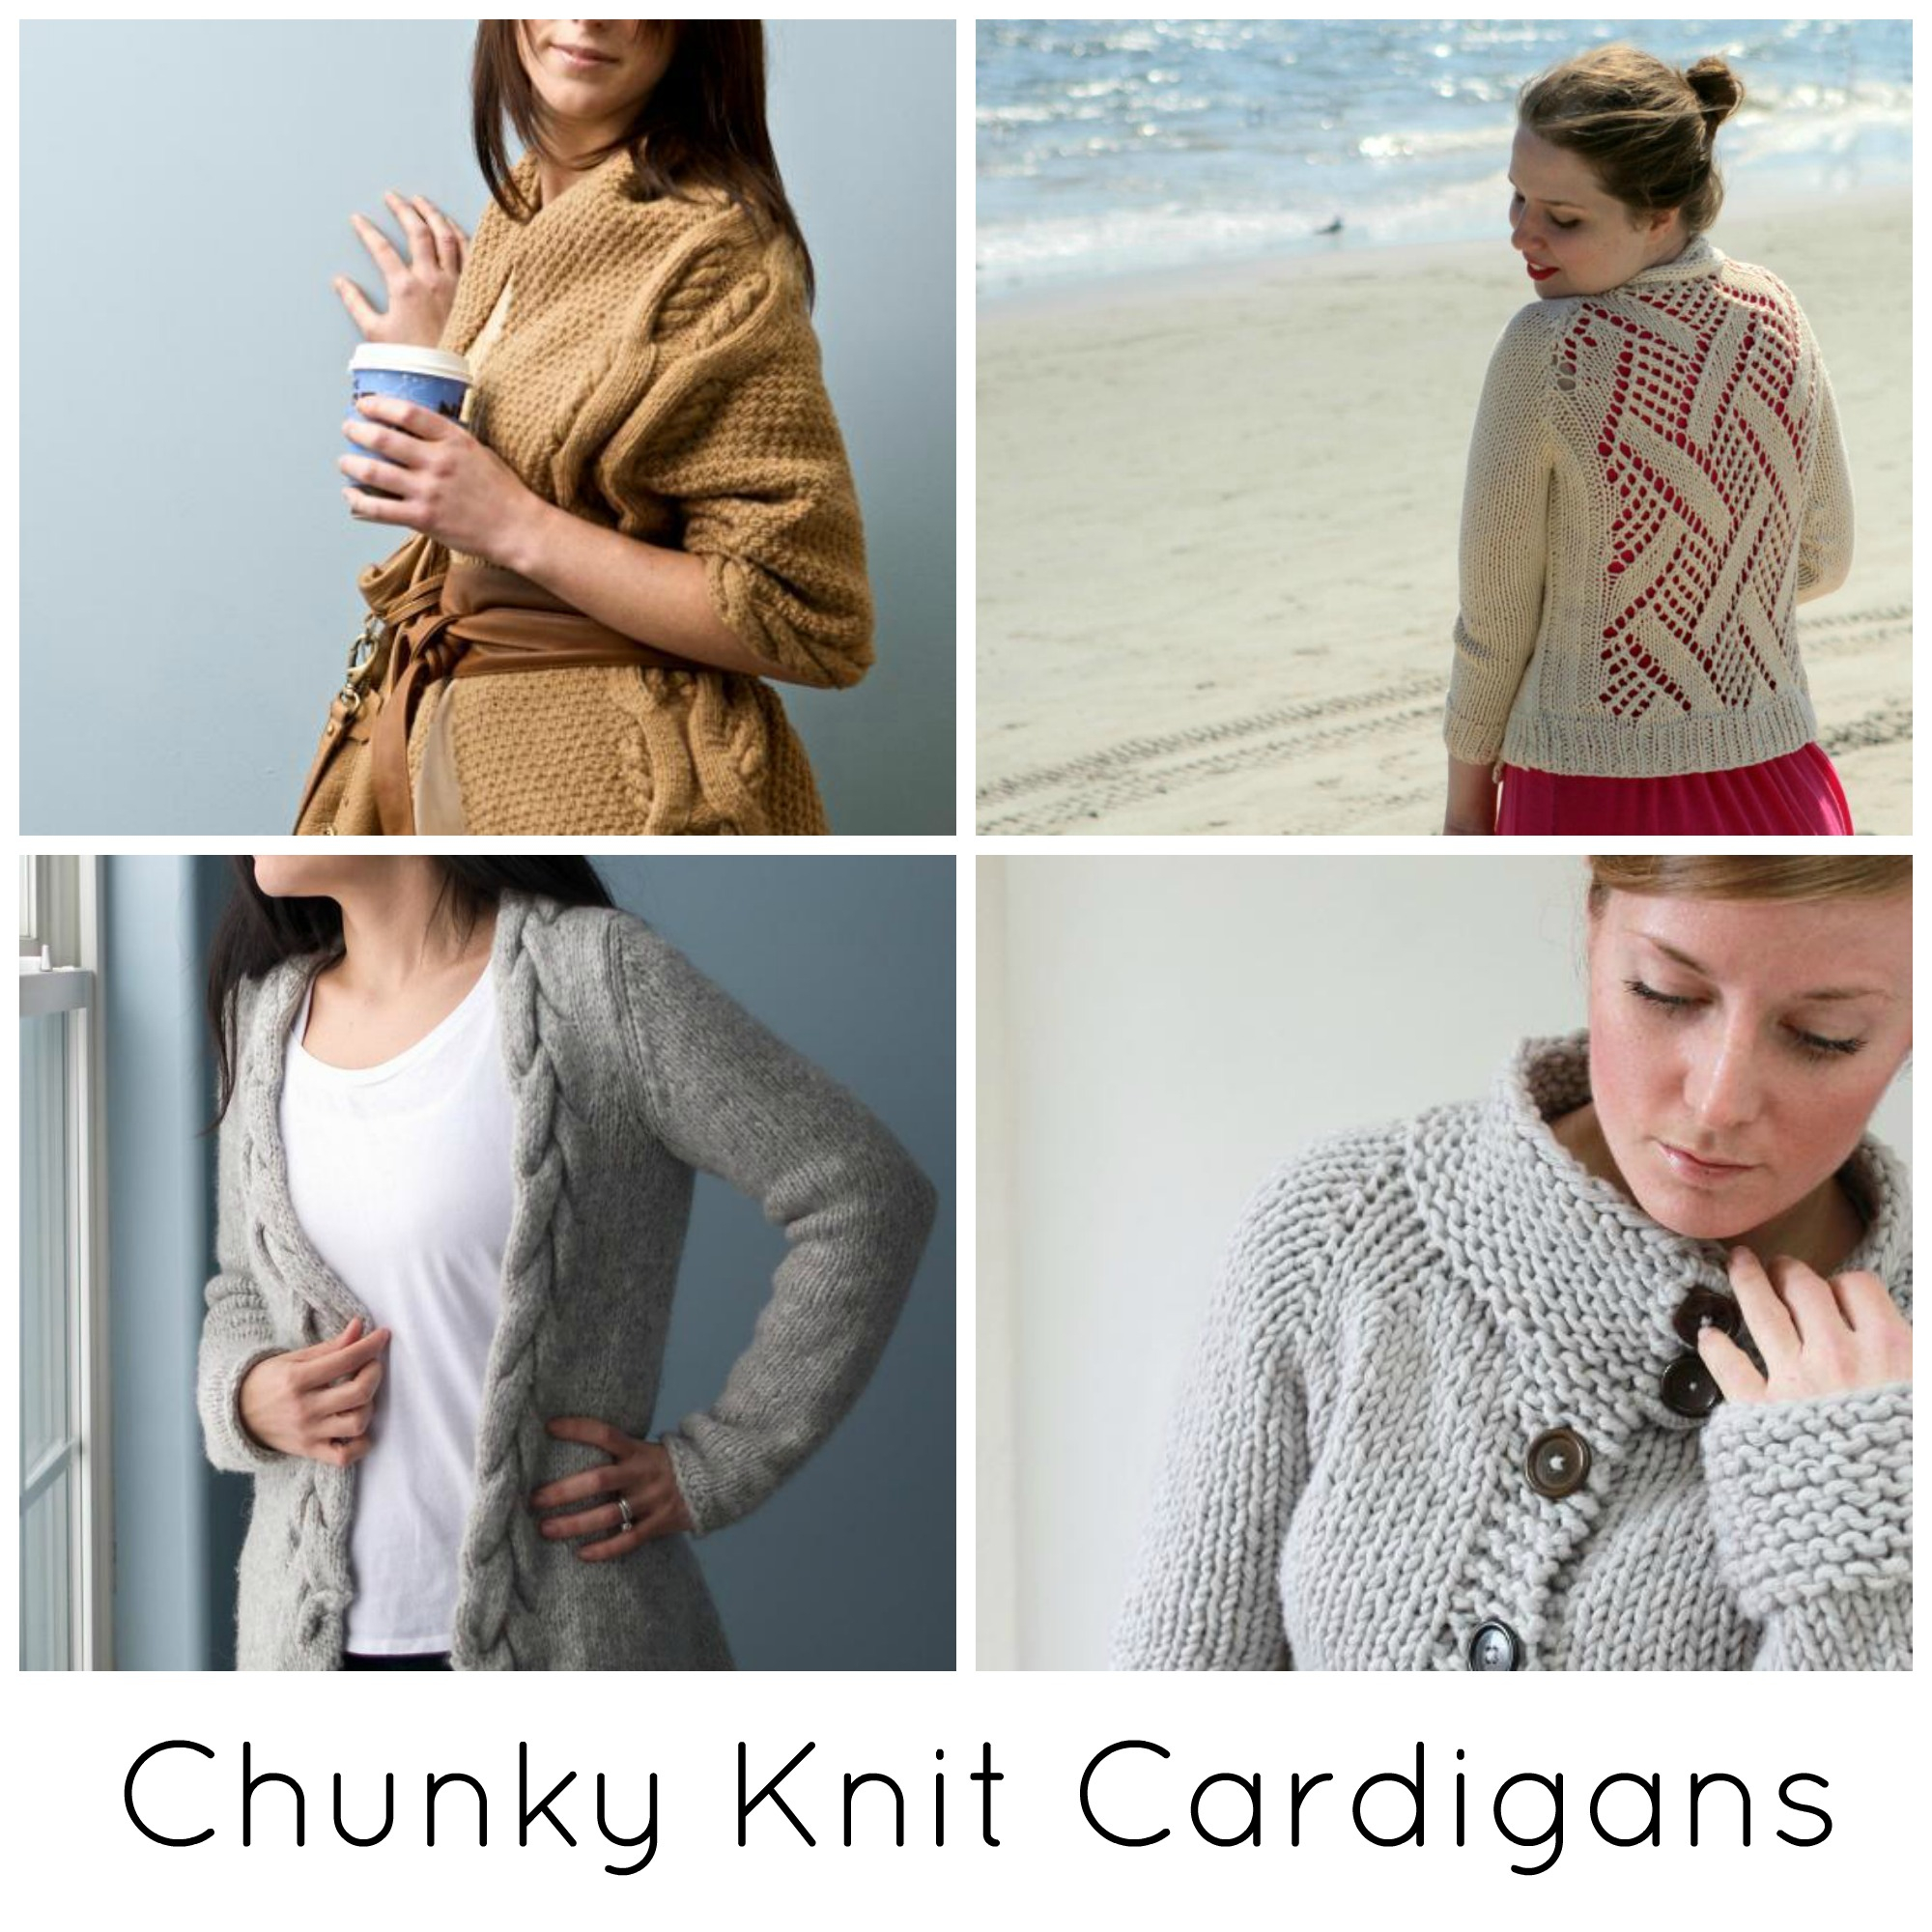 Free Knitting Pattern Sweater The Coziest Chunky Knit Cardigan Patterns Ever